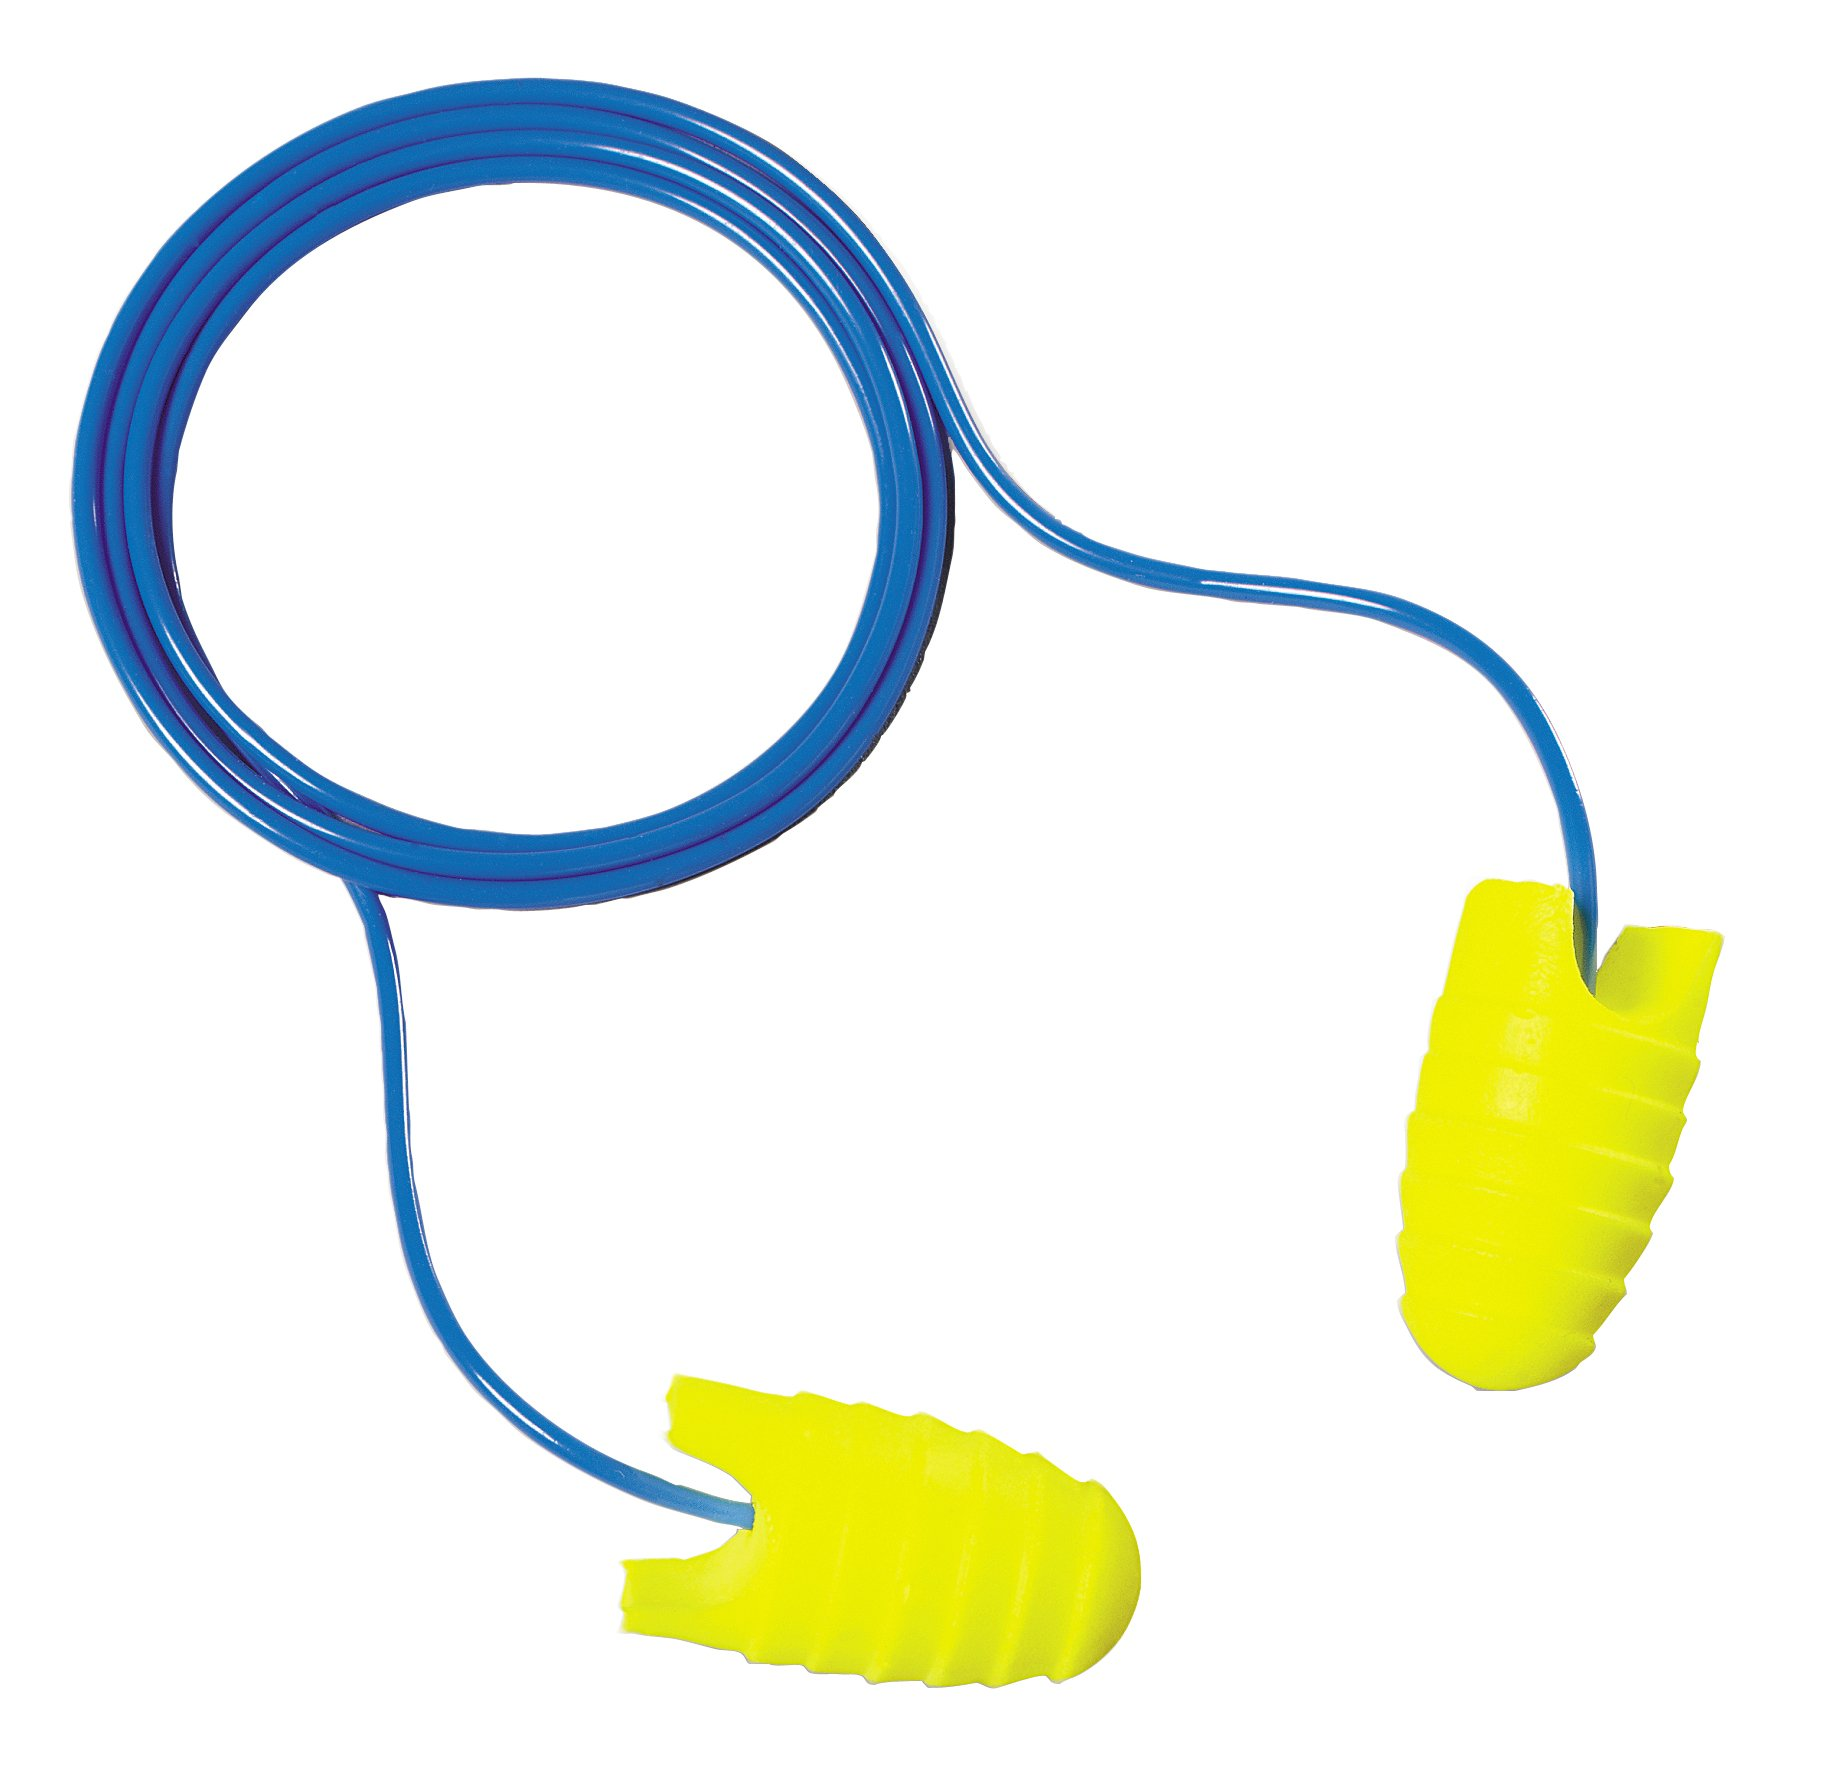 3M E-A-Rsoft Grippers Corded Earplugs, Hearing Conservation 312-6001